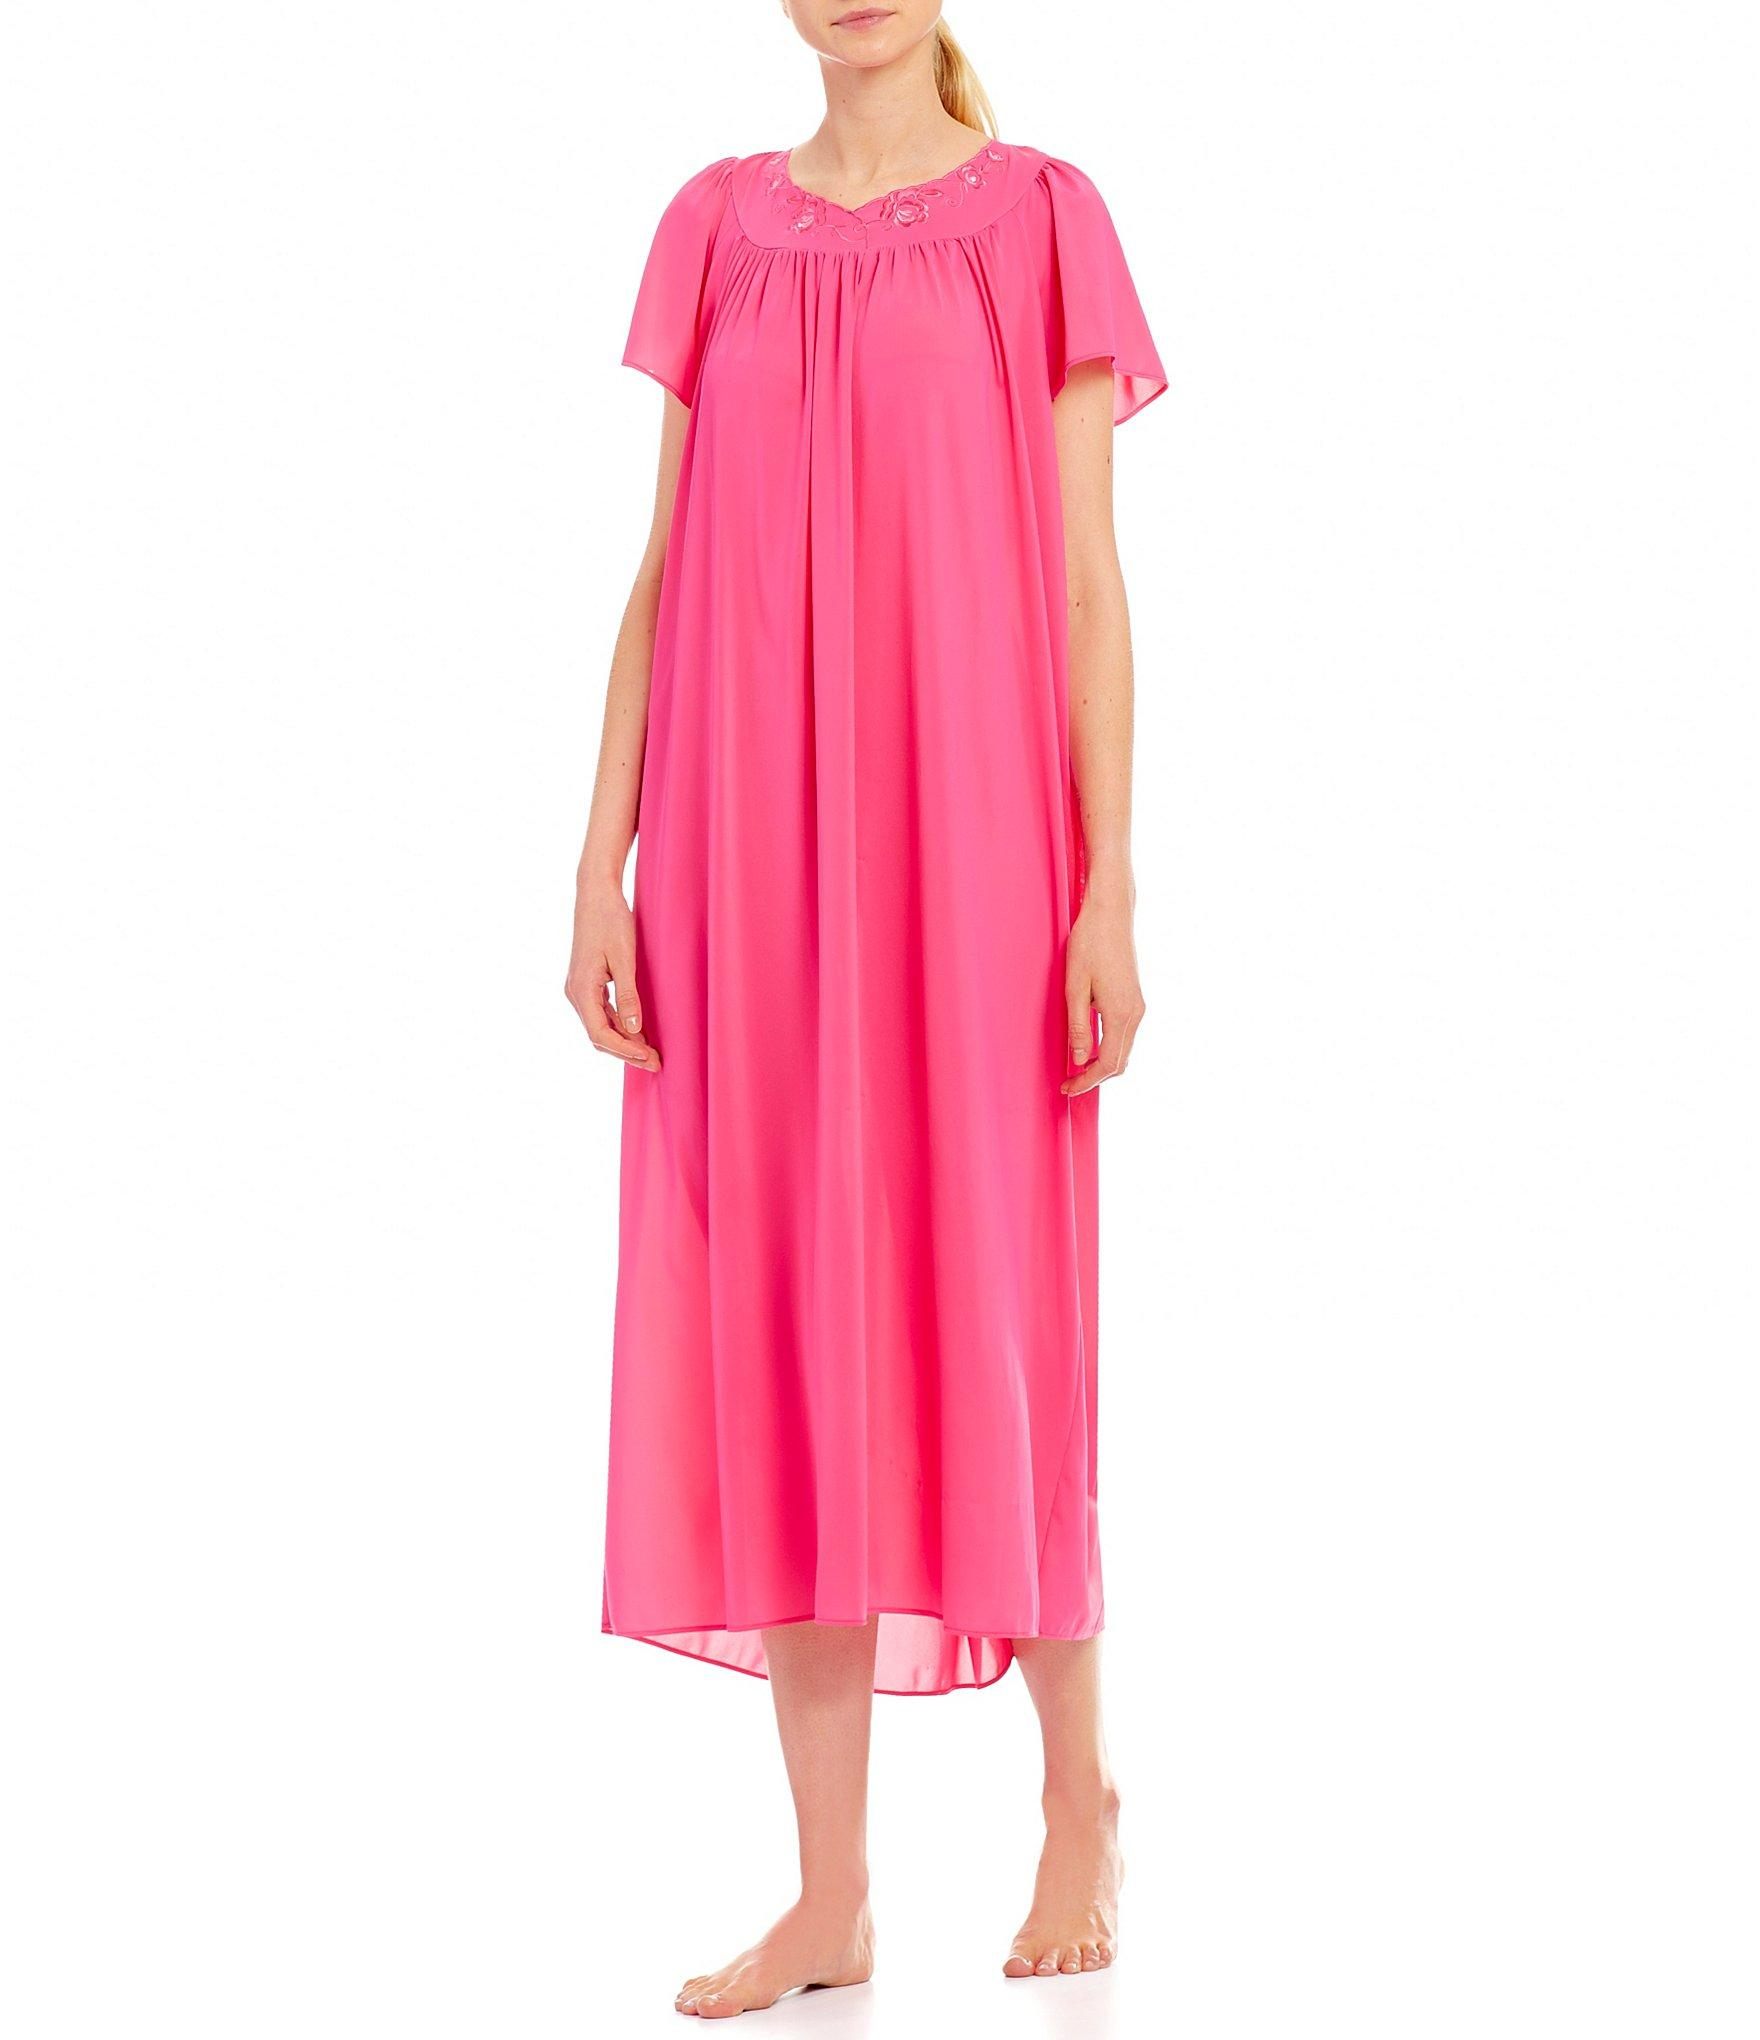 8896bdf9ba Lyst - Miss Elaine Tricot Nightgown in Pink